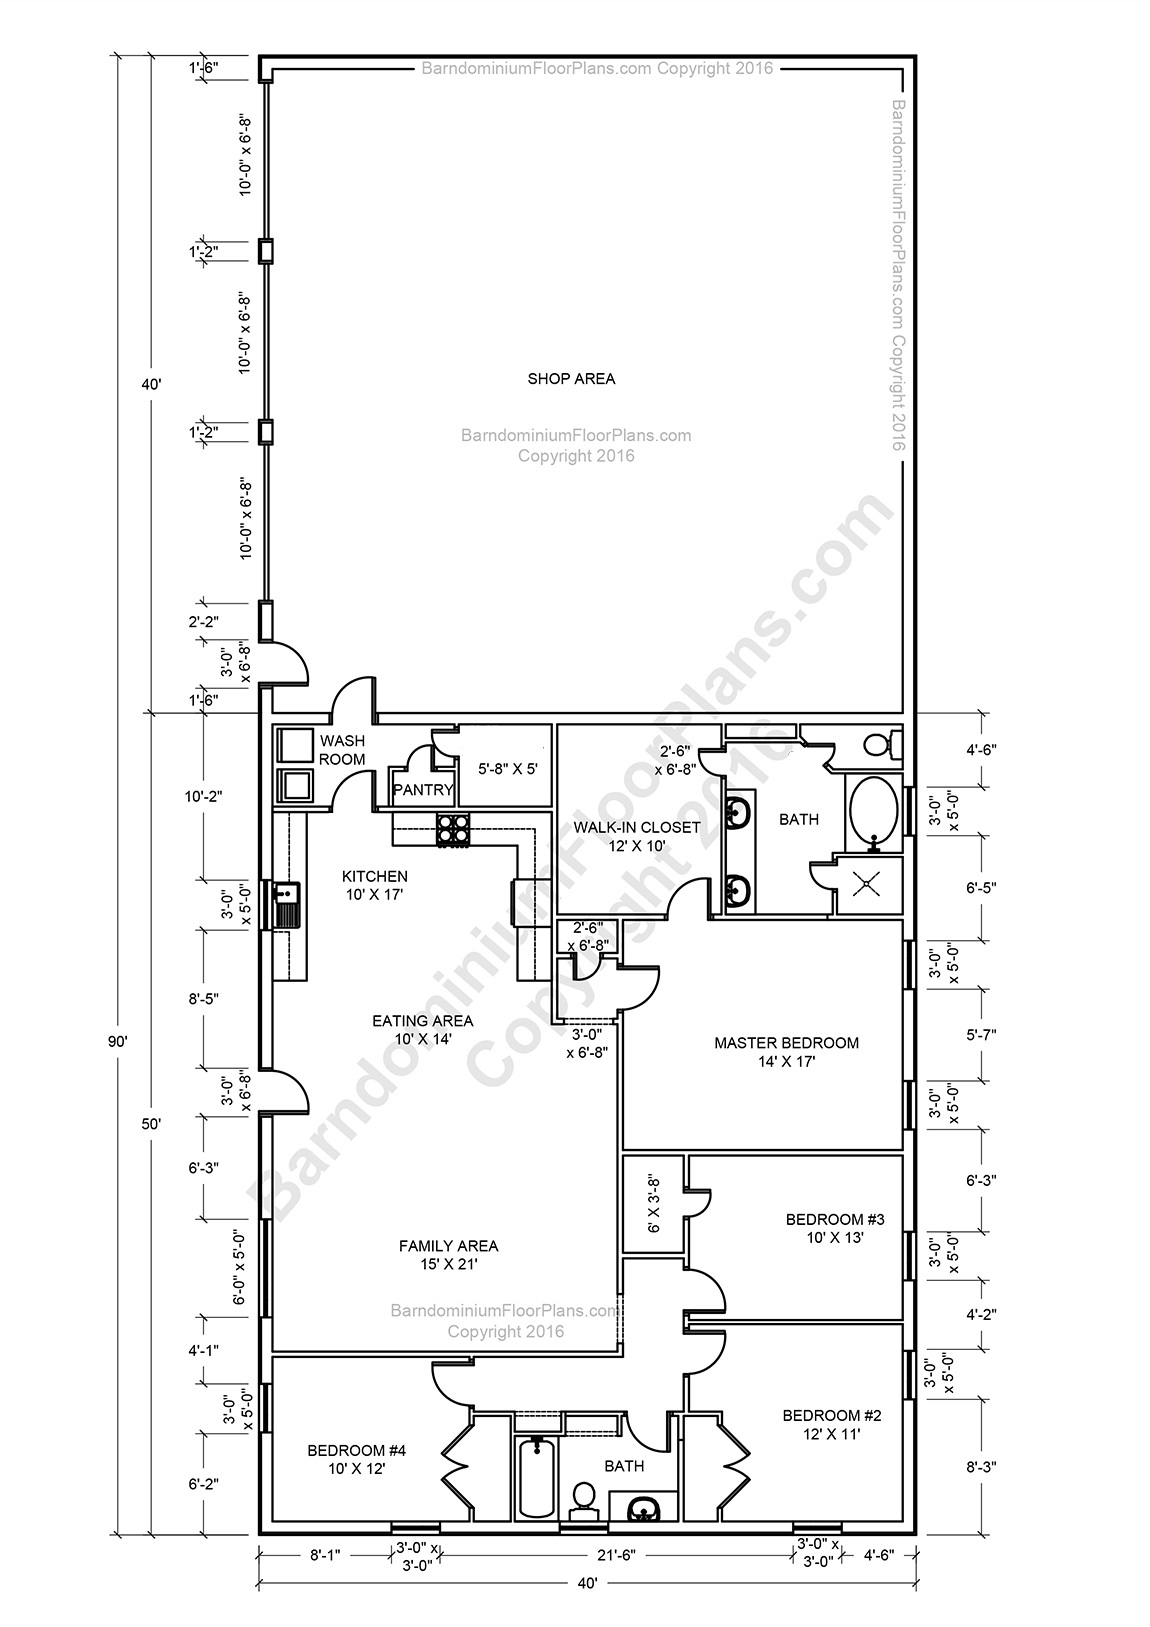 Barndominium Floor Plans, Pole Barn House Plans and Metal ... on house kitchen plans, house basement plans, house open plans, house garage plans, house apartment plans, house front plans, house side plans, house ranch plans, house cottage plans,